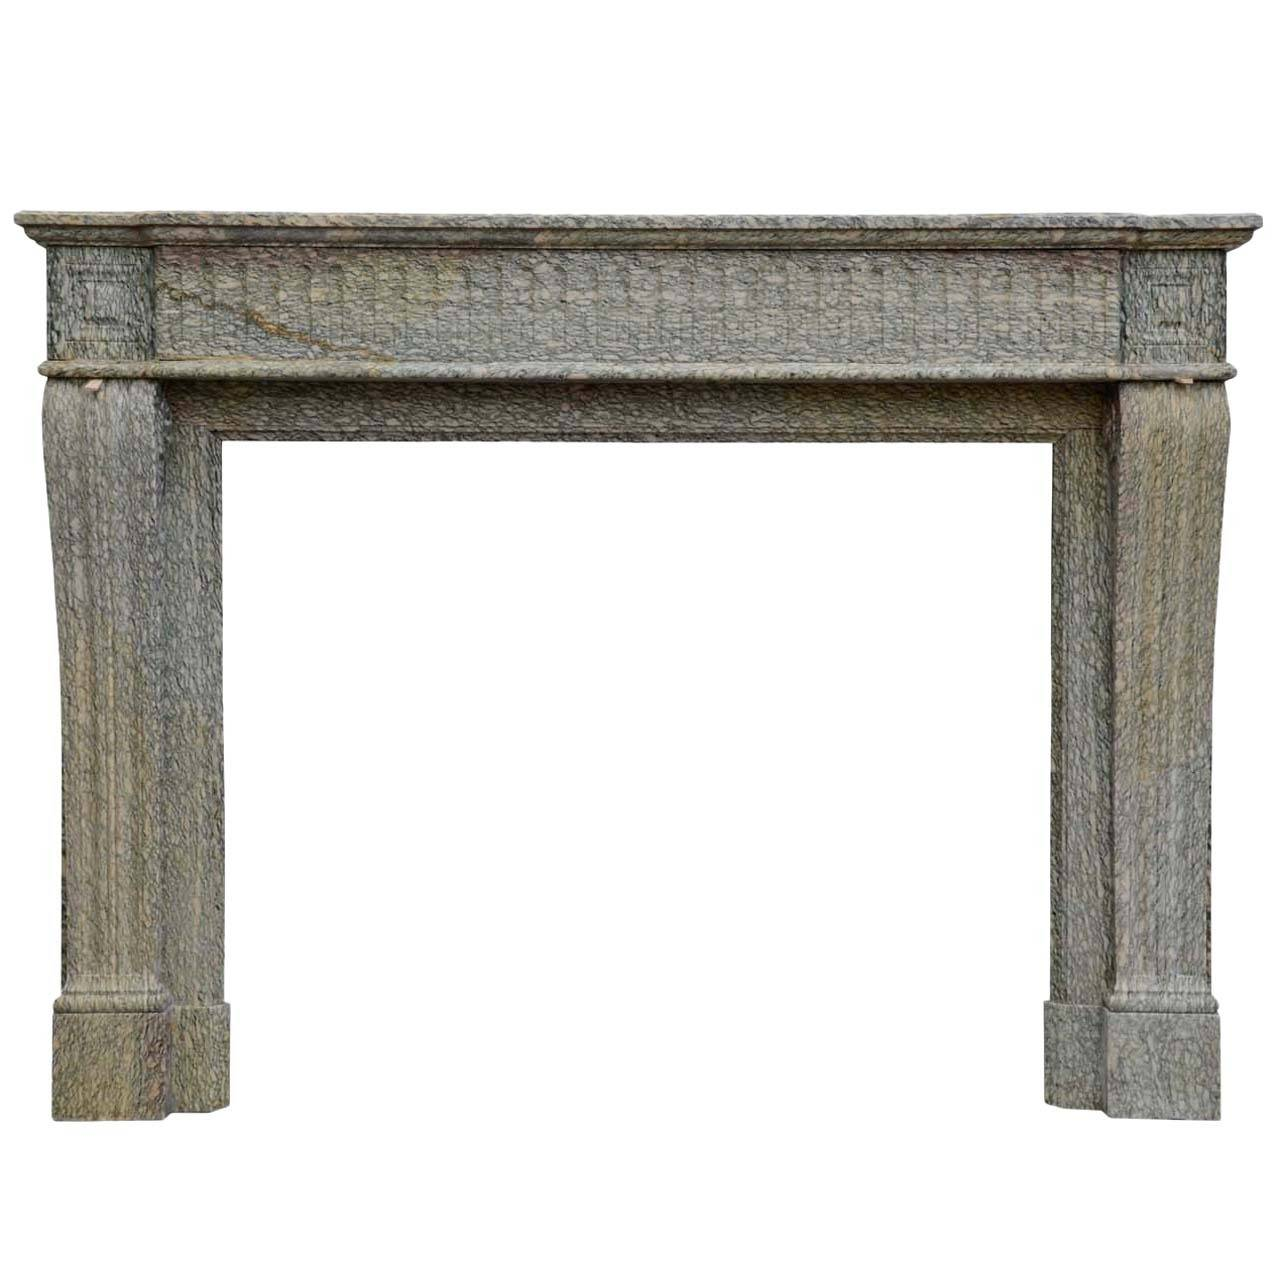 French Louis XVI Style Marble Fireplace, 19th Century